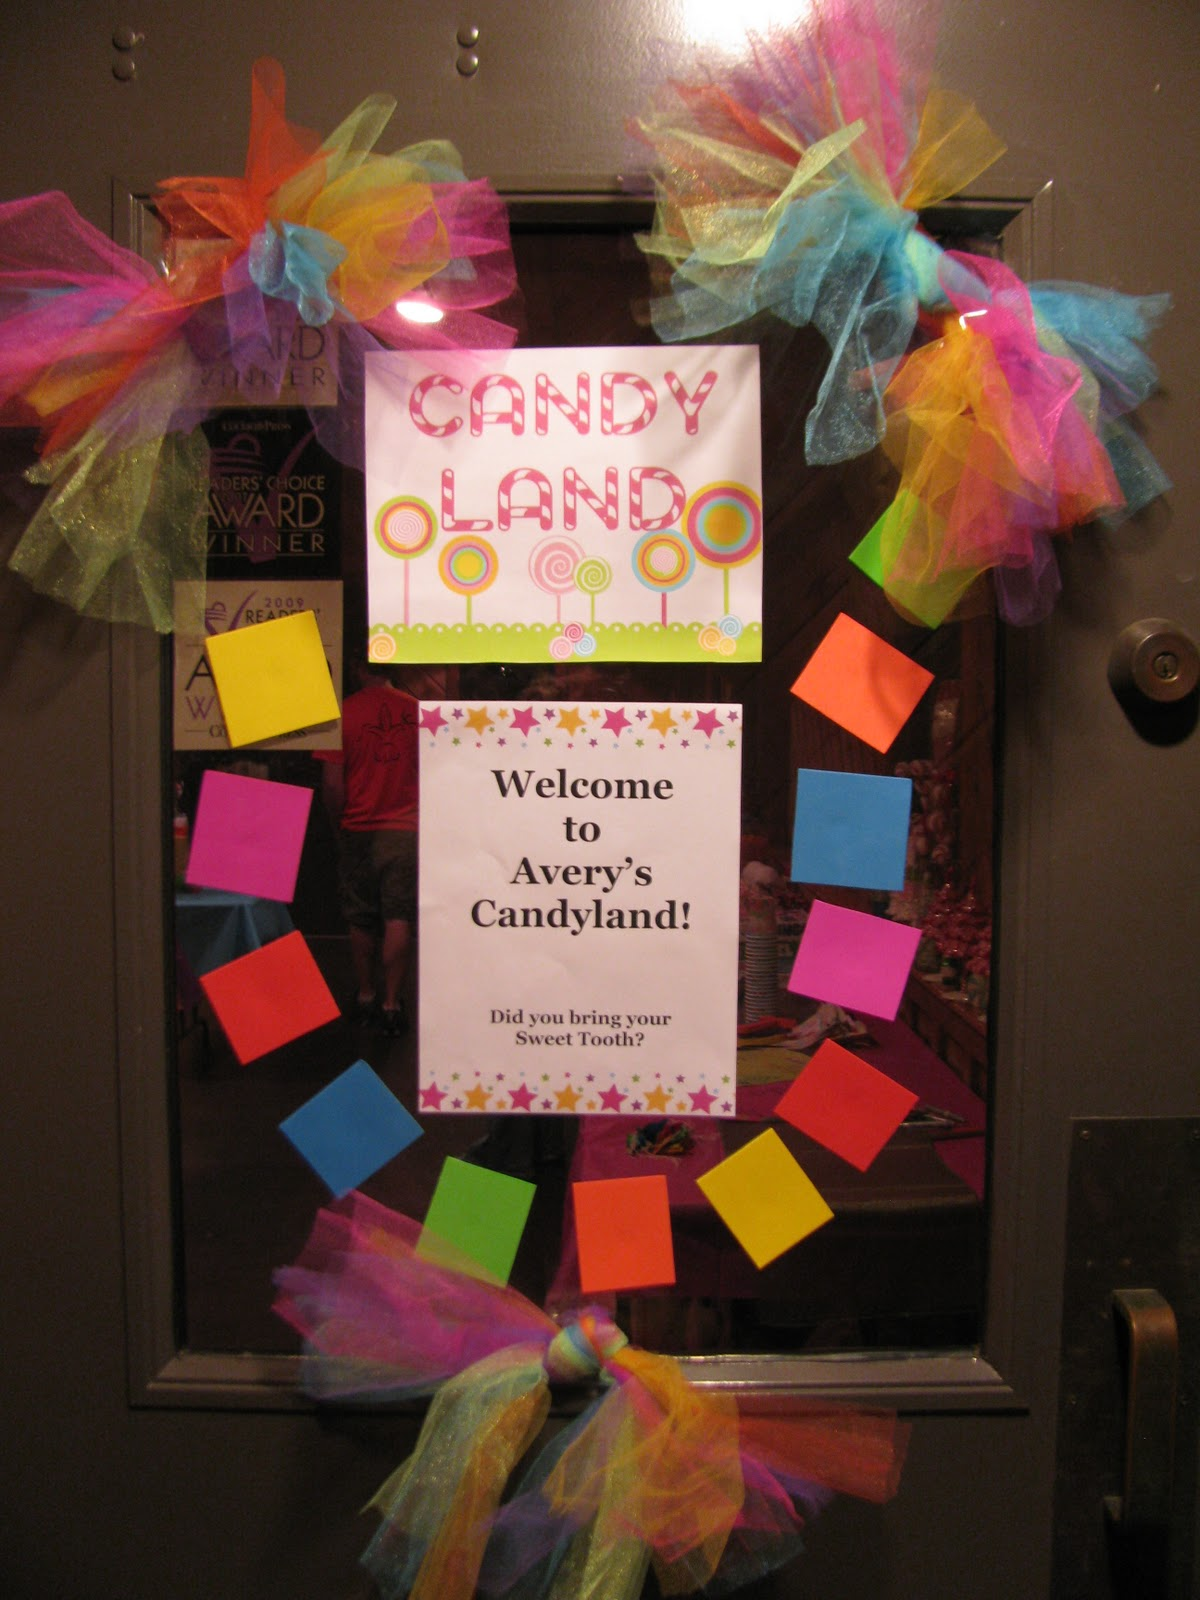 Candyland On Pinterest Candy Land Candy Land Party And Candy Party